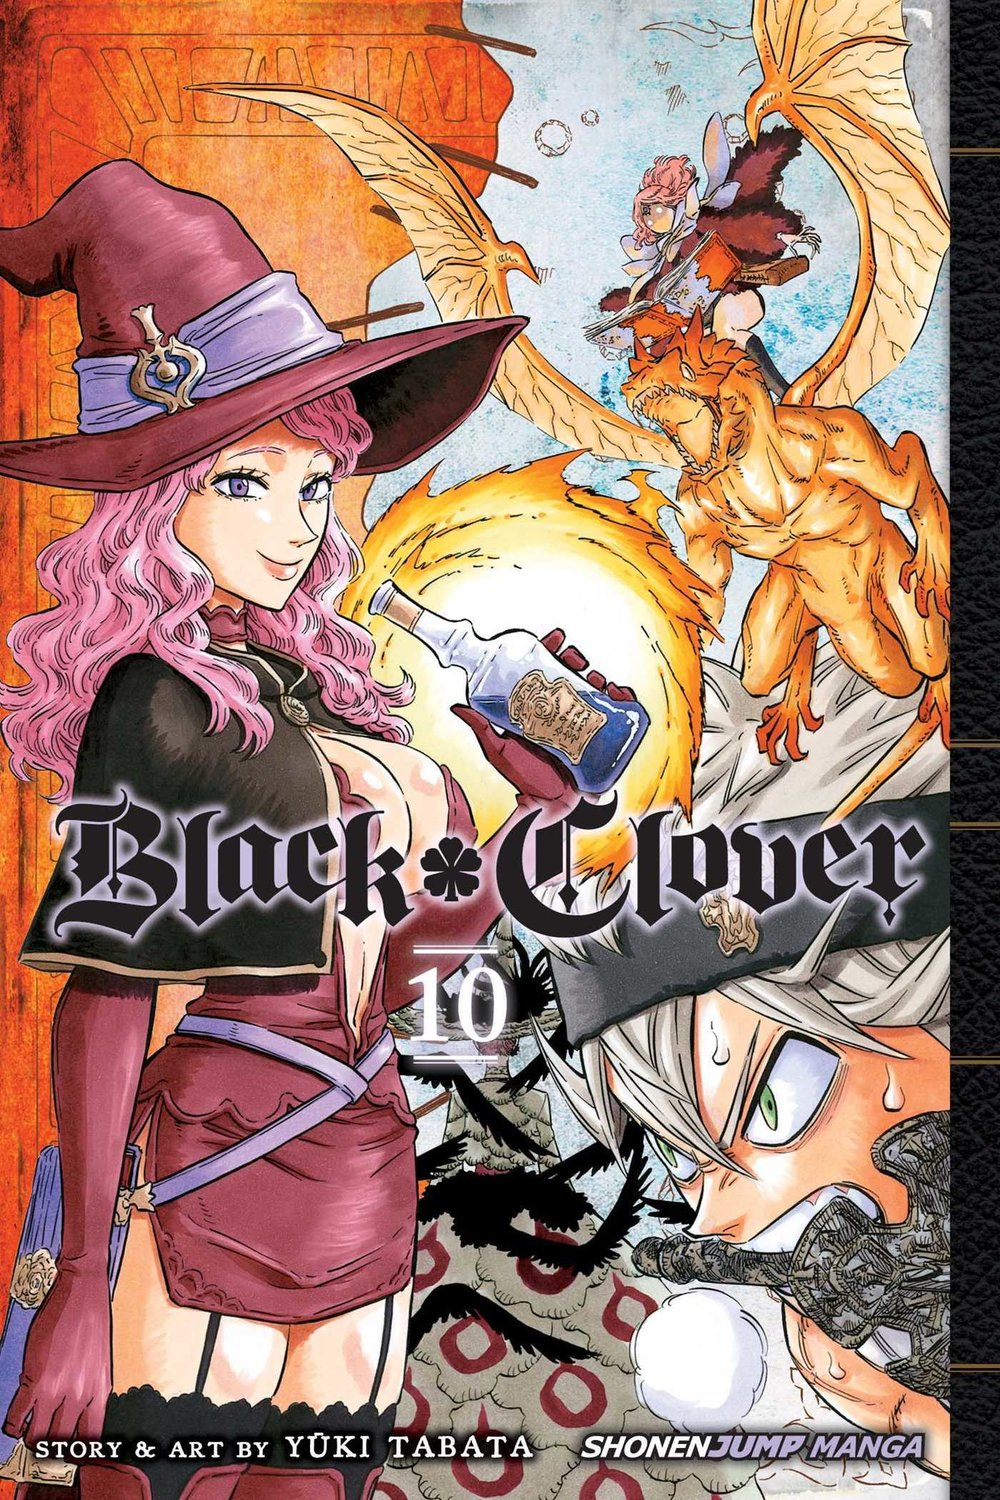 Black Clover vol. 10.jpg